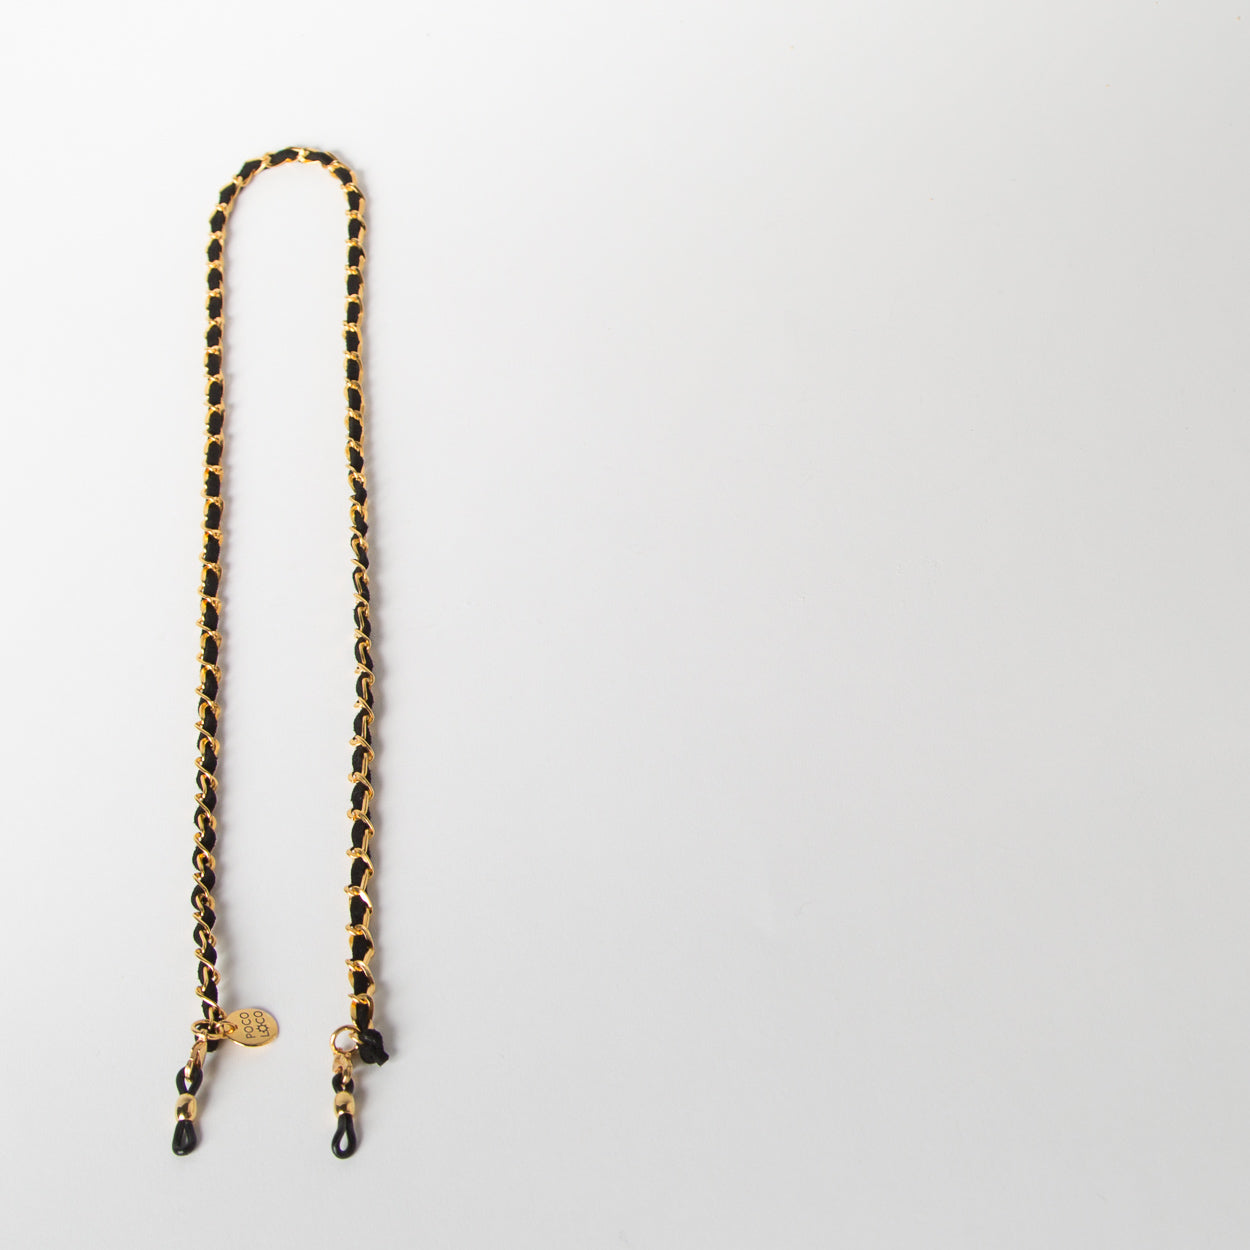 Chanel inspired black & gold chain eyewear strap by Poco Loco